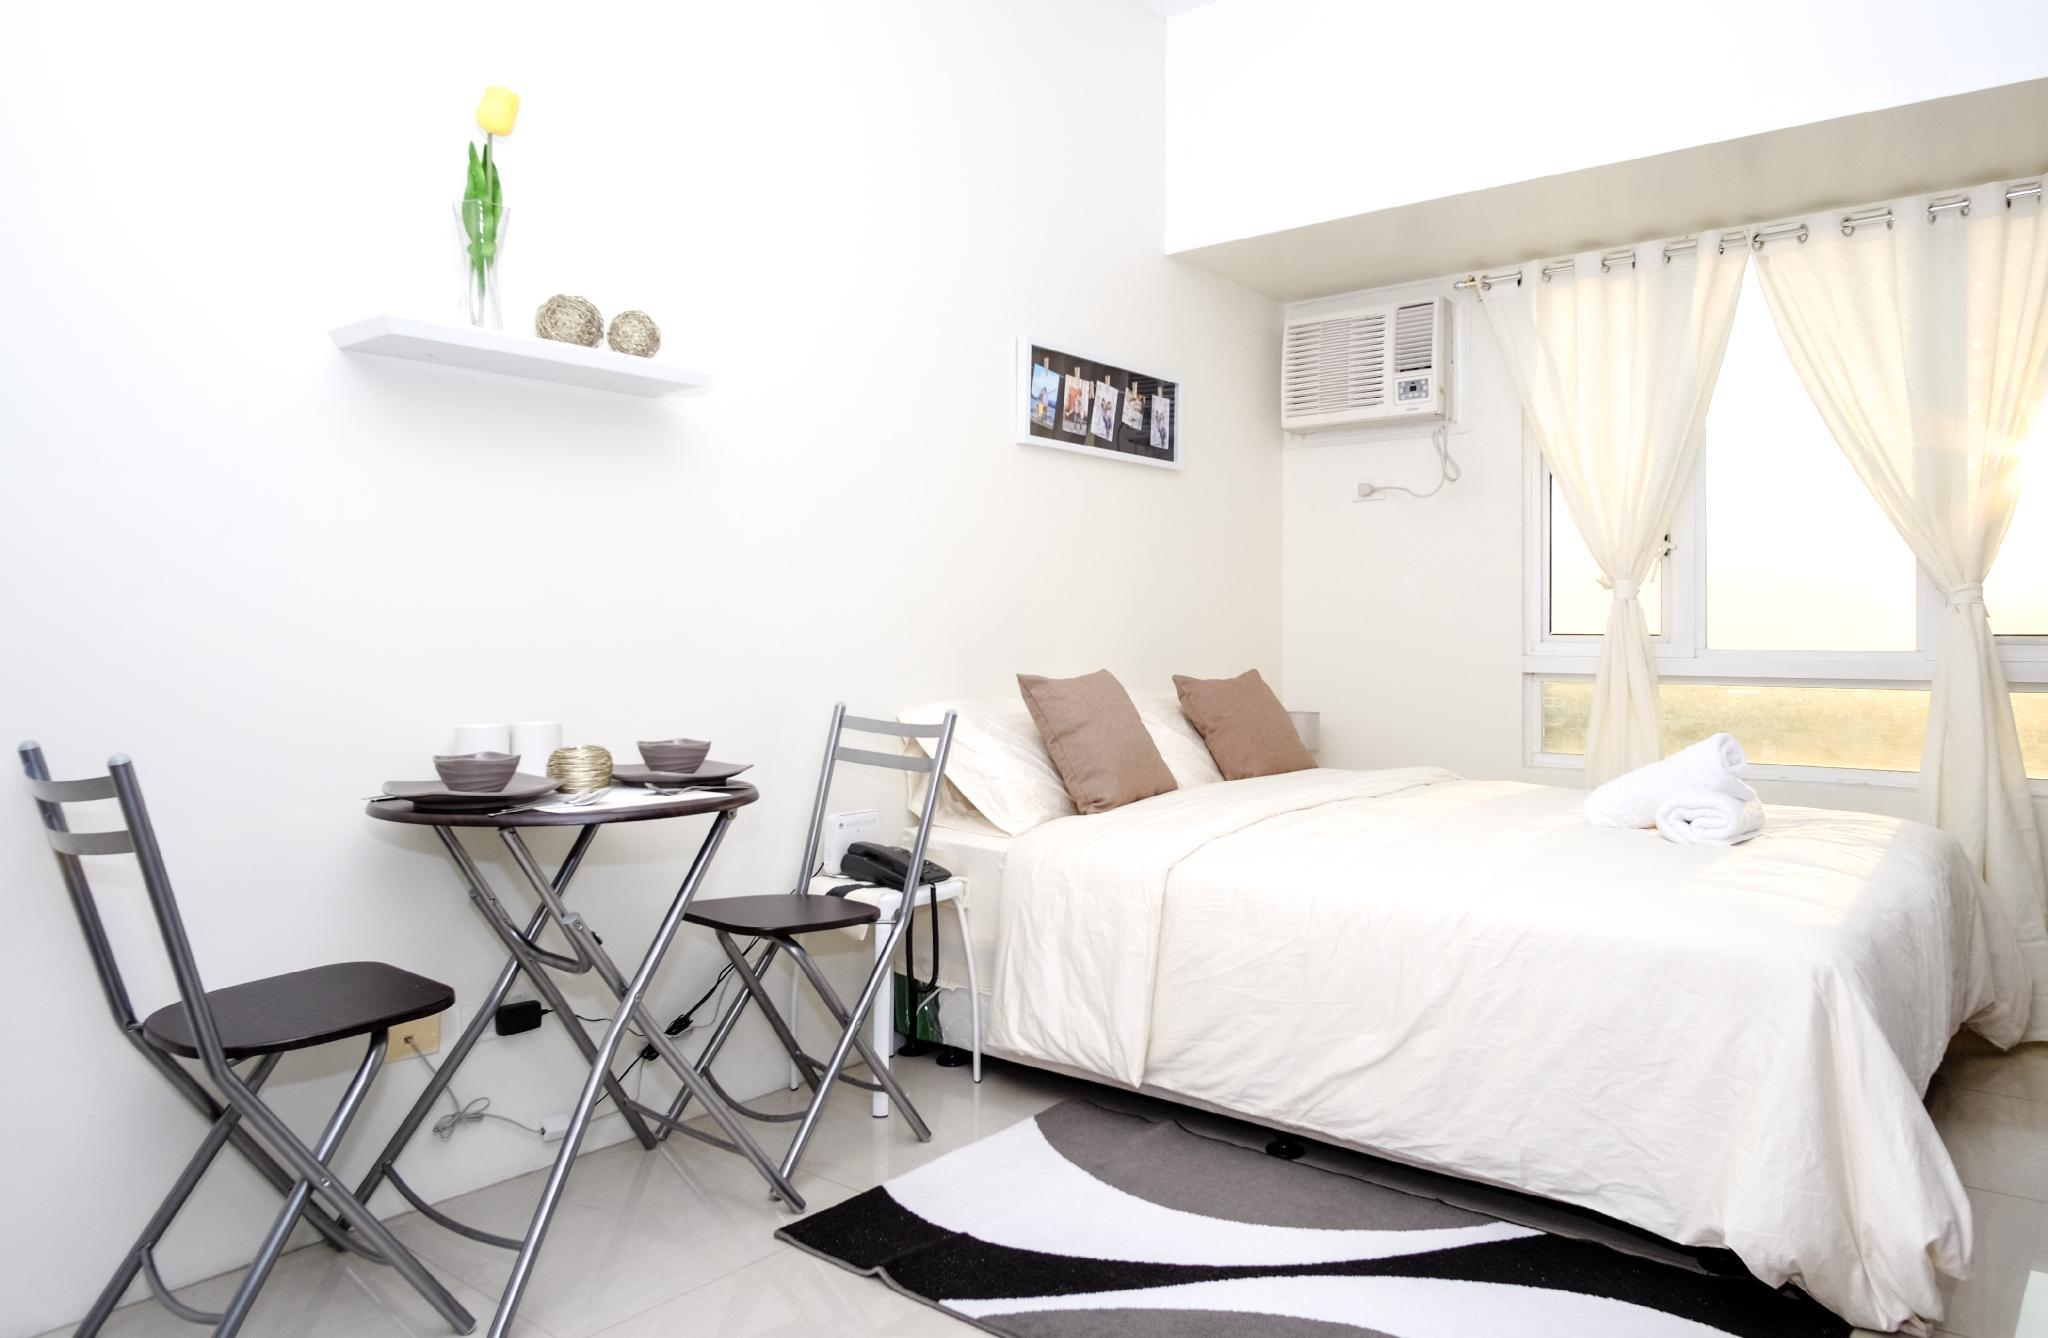 Studio Unit At The Beacon Makati With Free WiFi